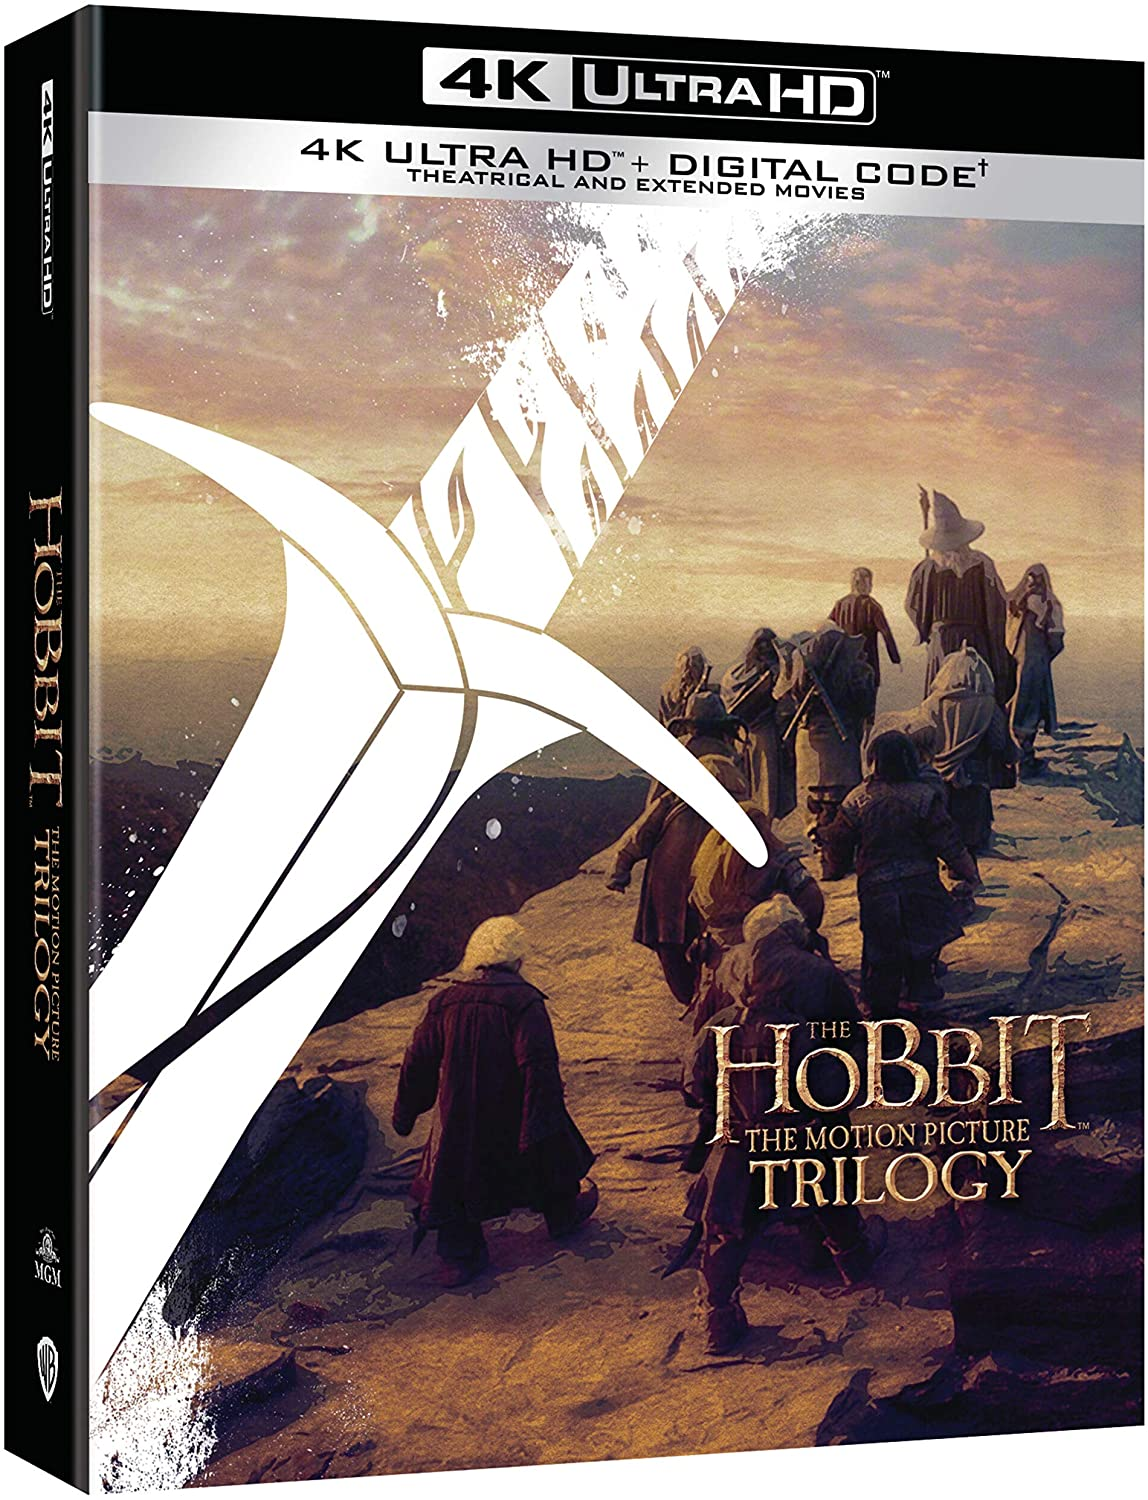 El Hobbit La Trilogia Blu-Ray 4K Ultra HD